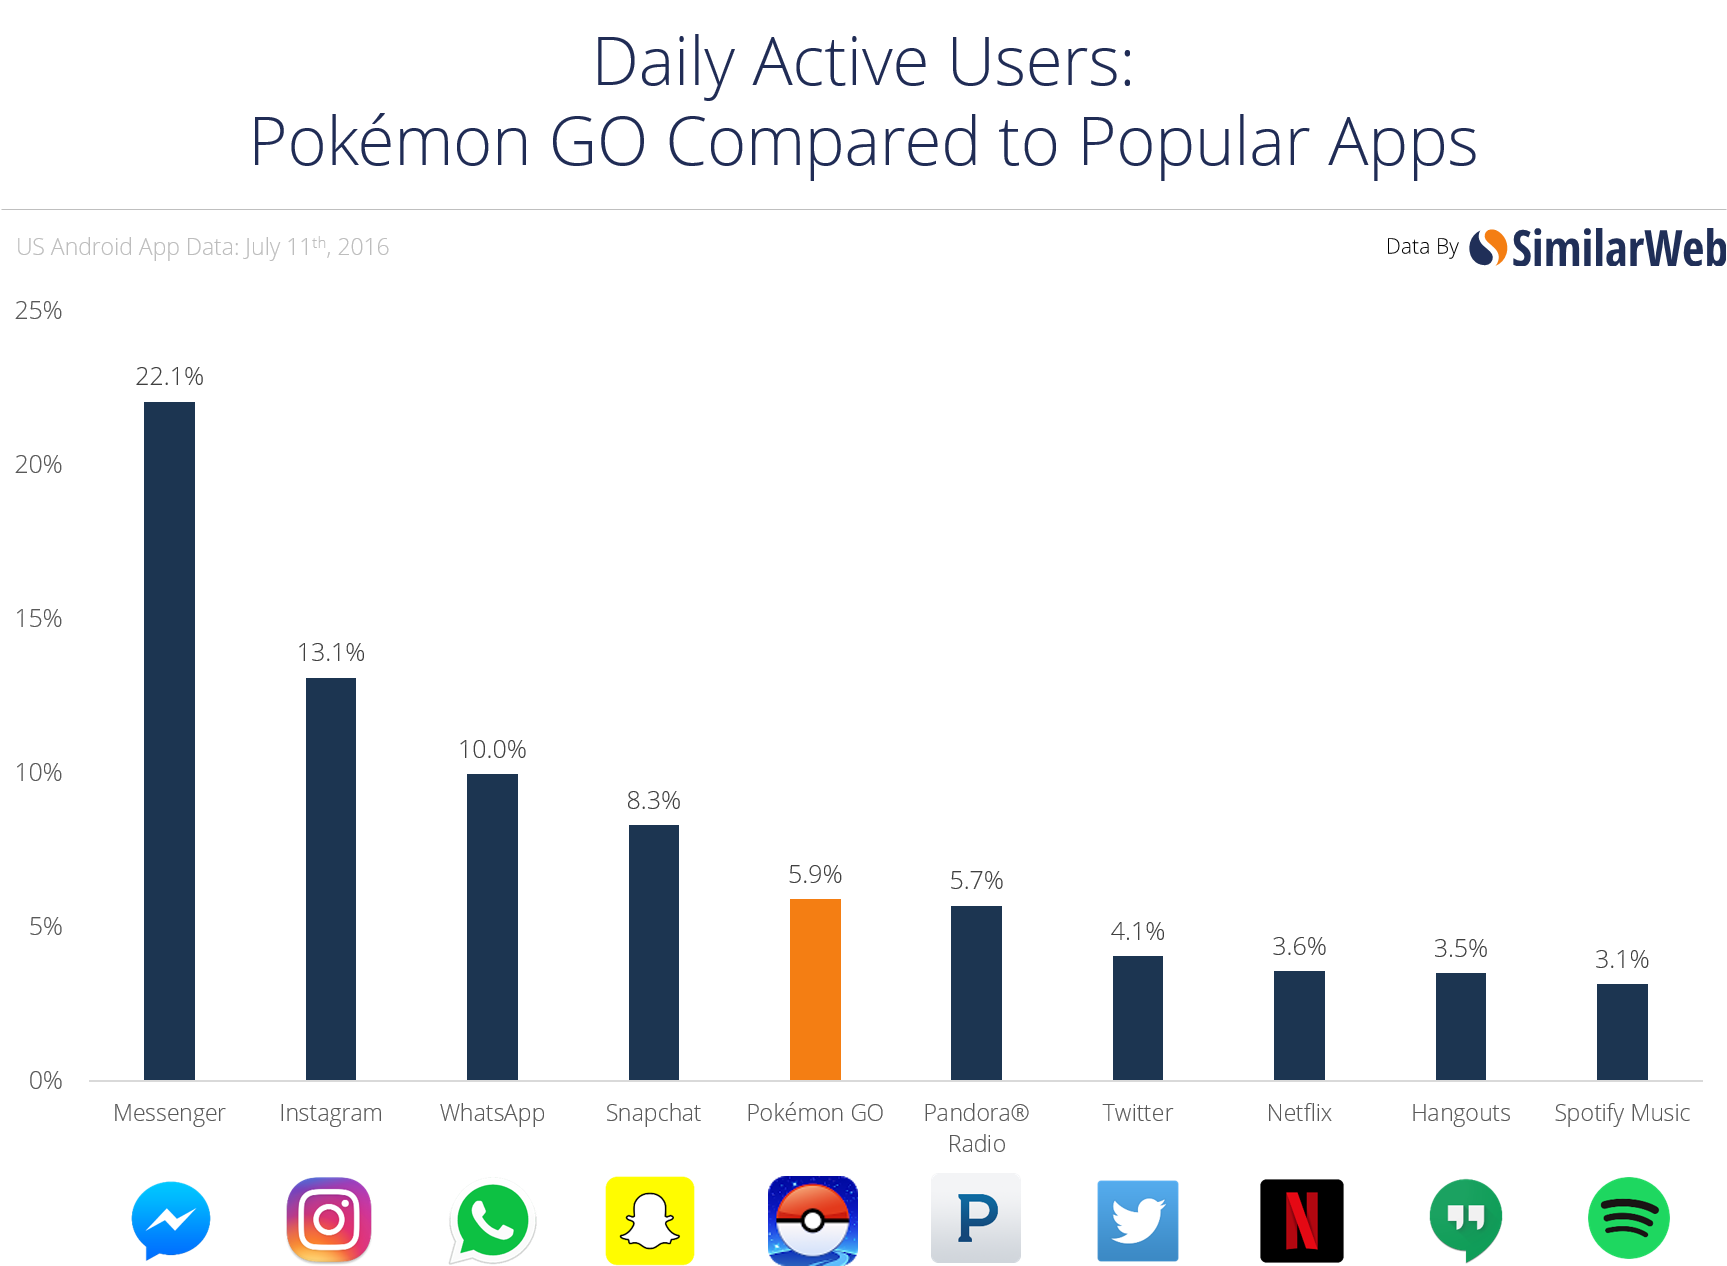 pokemon-go-and-other-apps-1.png